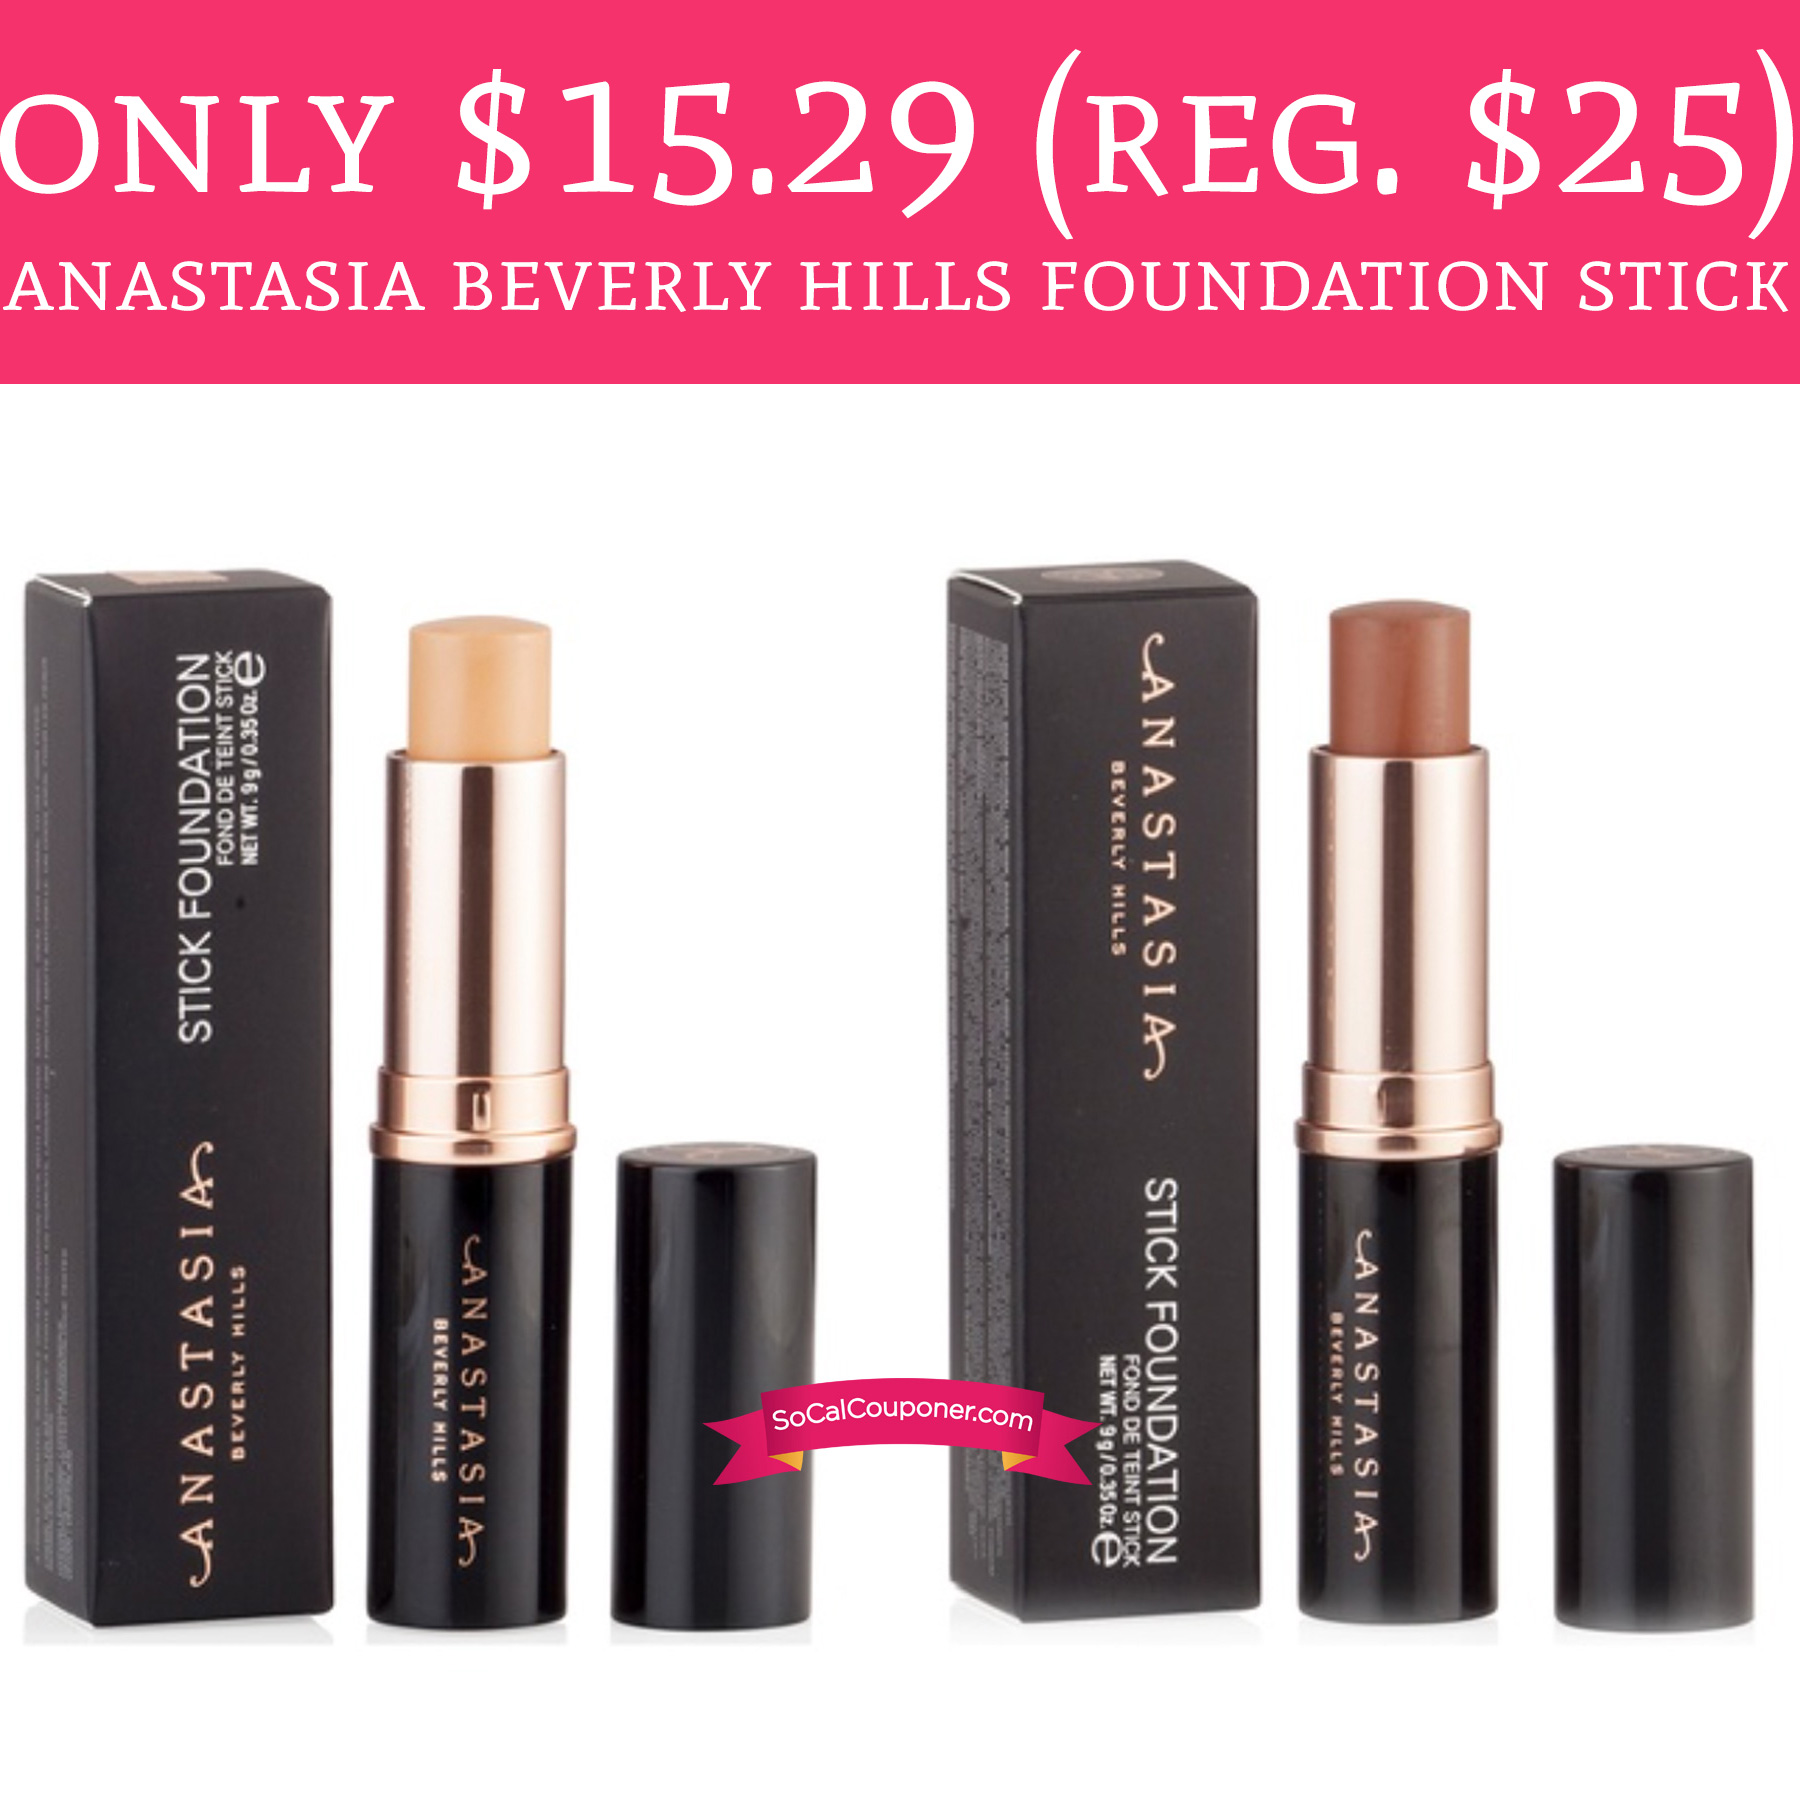 Anastasia cosmetics coupons